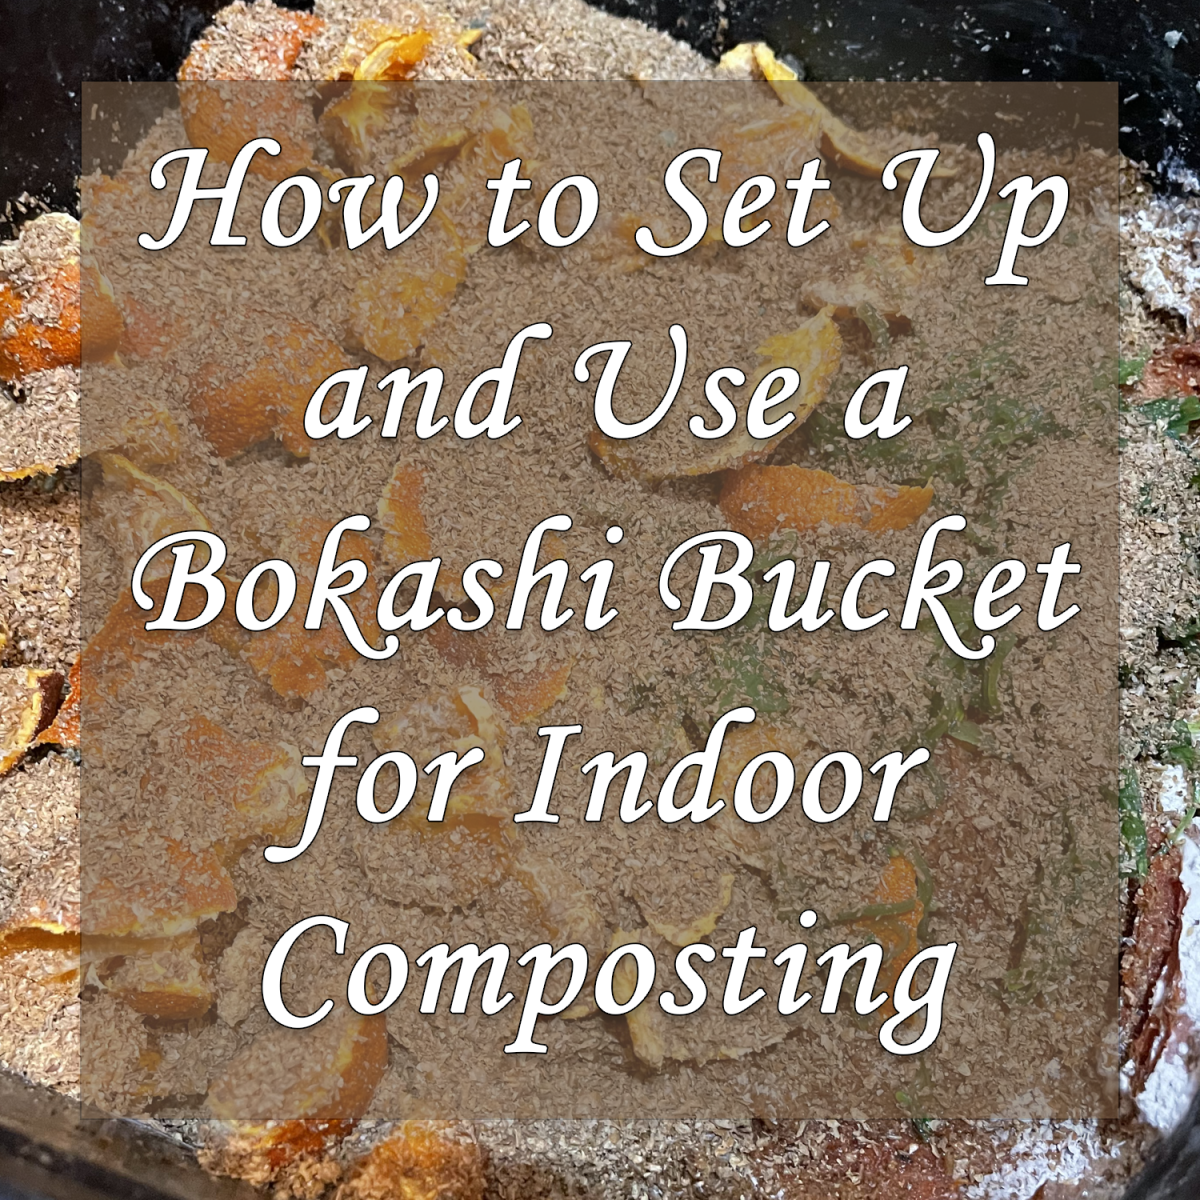 How to Set Up and Use a Bokashi Bucket for Indoor Composting